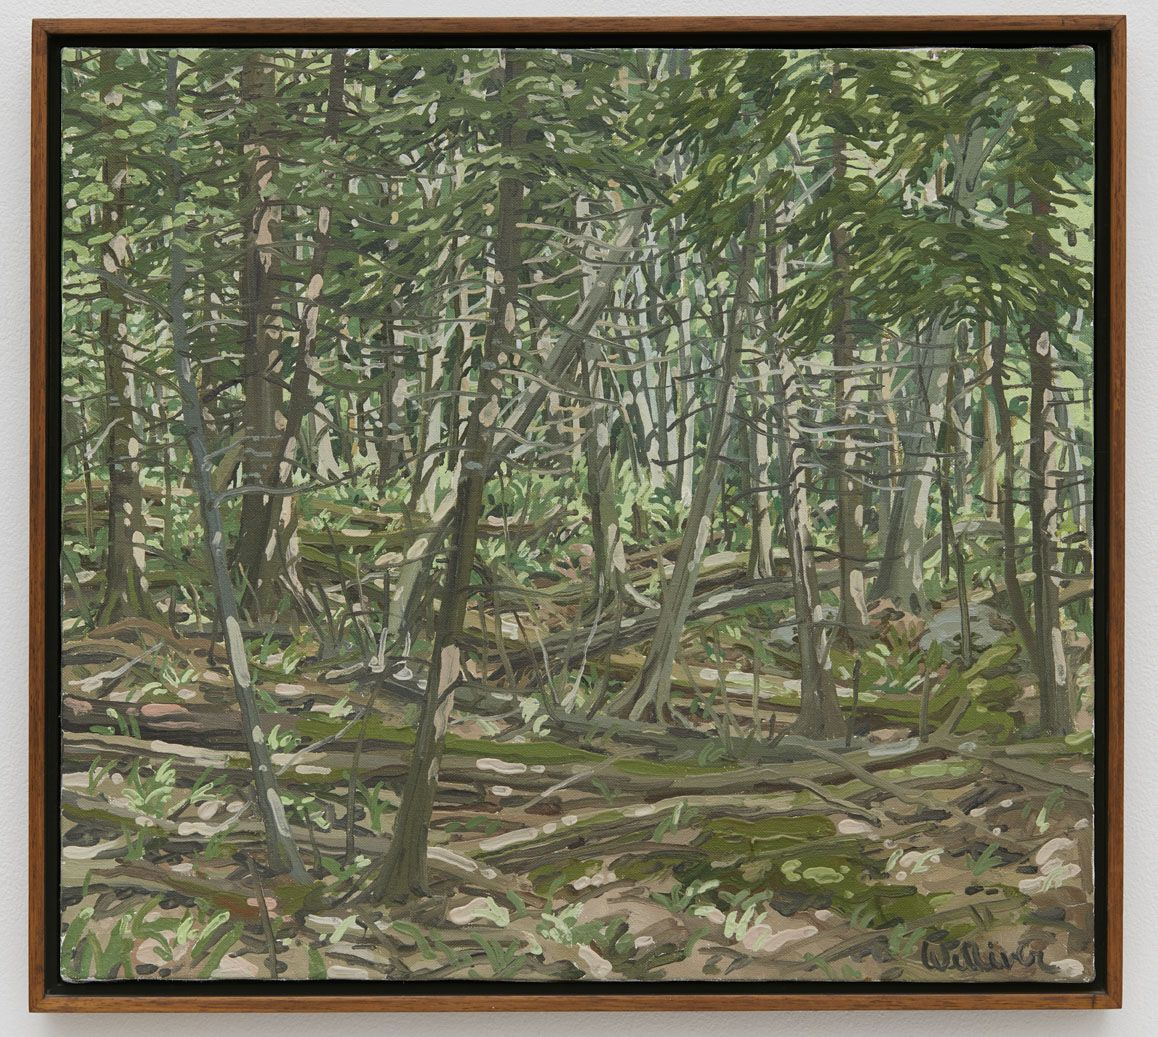 Neil Welliver Study for Polly's Place, 1982